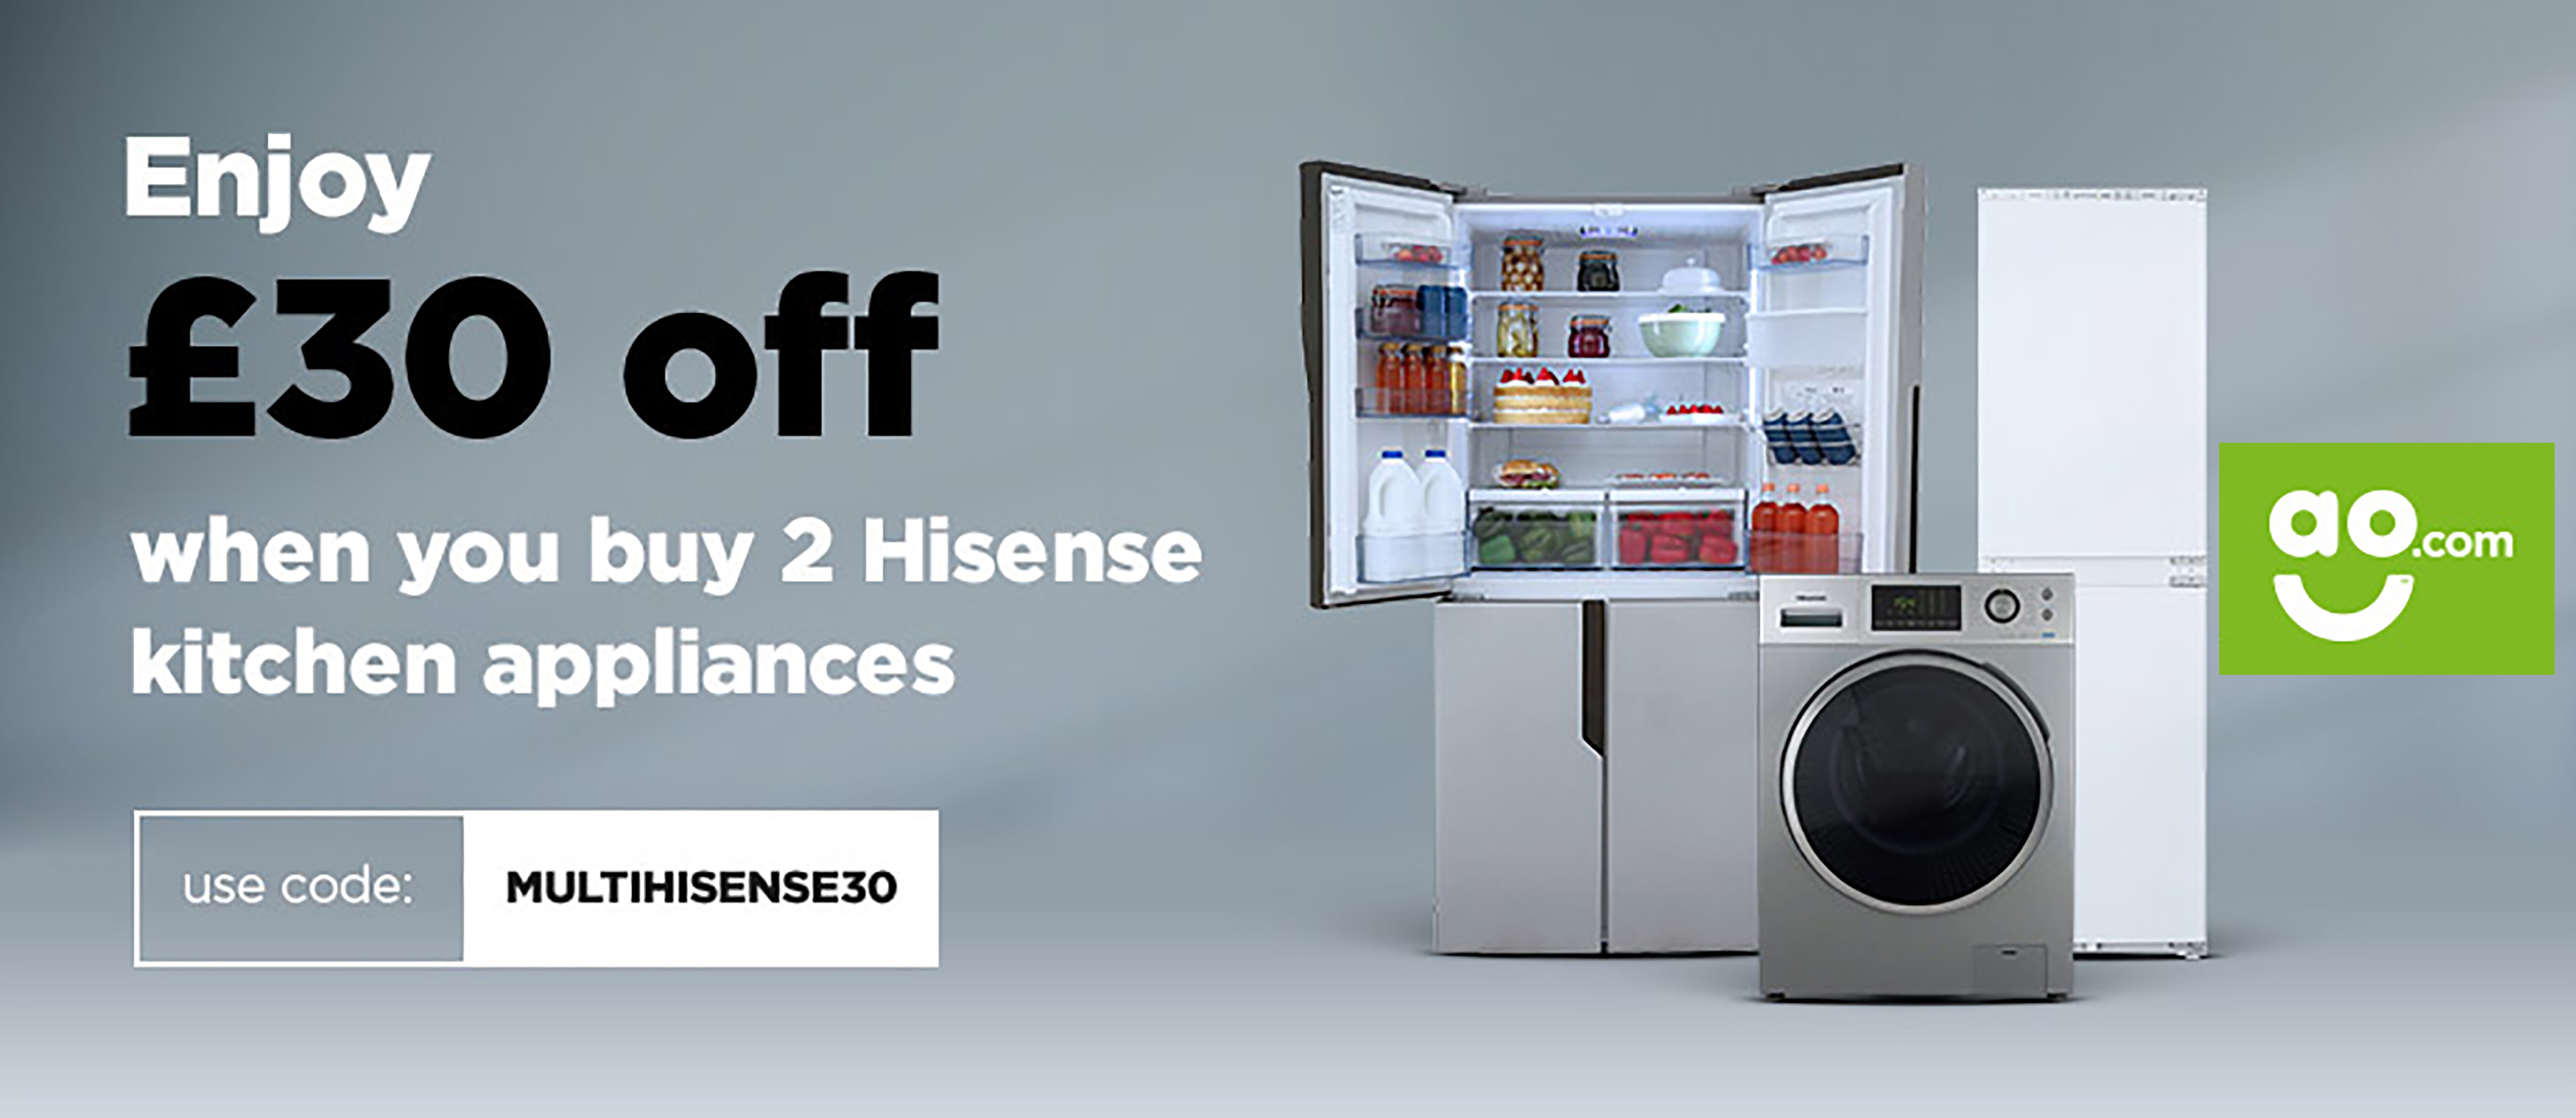 hisense have teamed up with ao com to offer customers   30 off the total cost when purchasing 2 kitchen appliances  this limited time offer is valid on any     enjoy   30 off with ao com   hisense uk  rh   hisense co uk